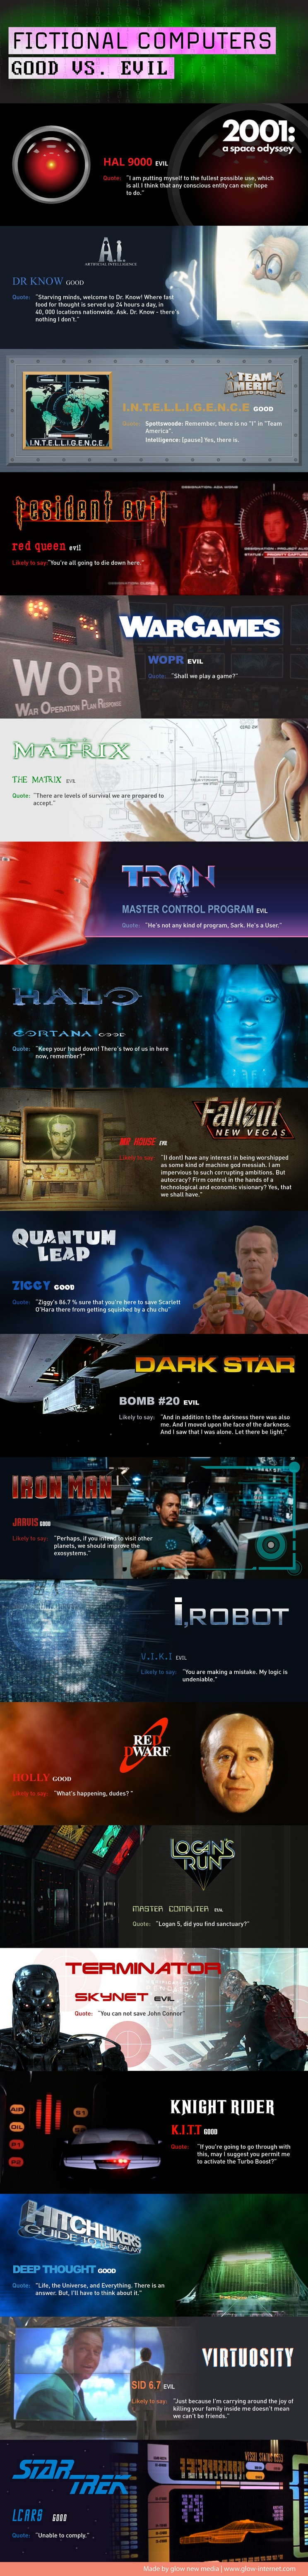 Fictional Computers - Good vs. Evil infographic